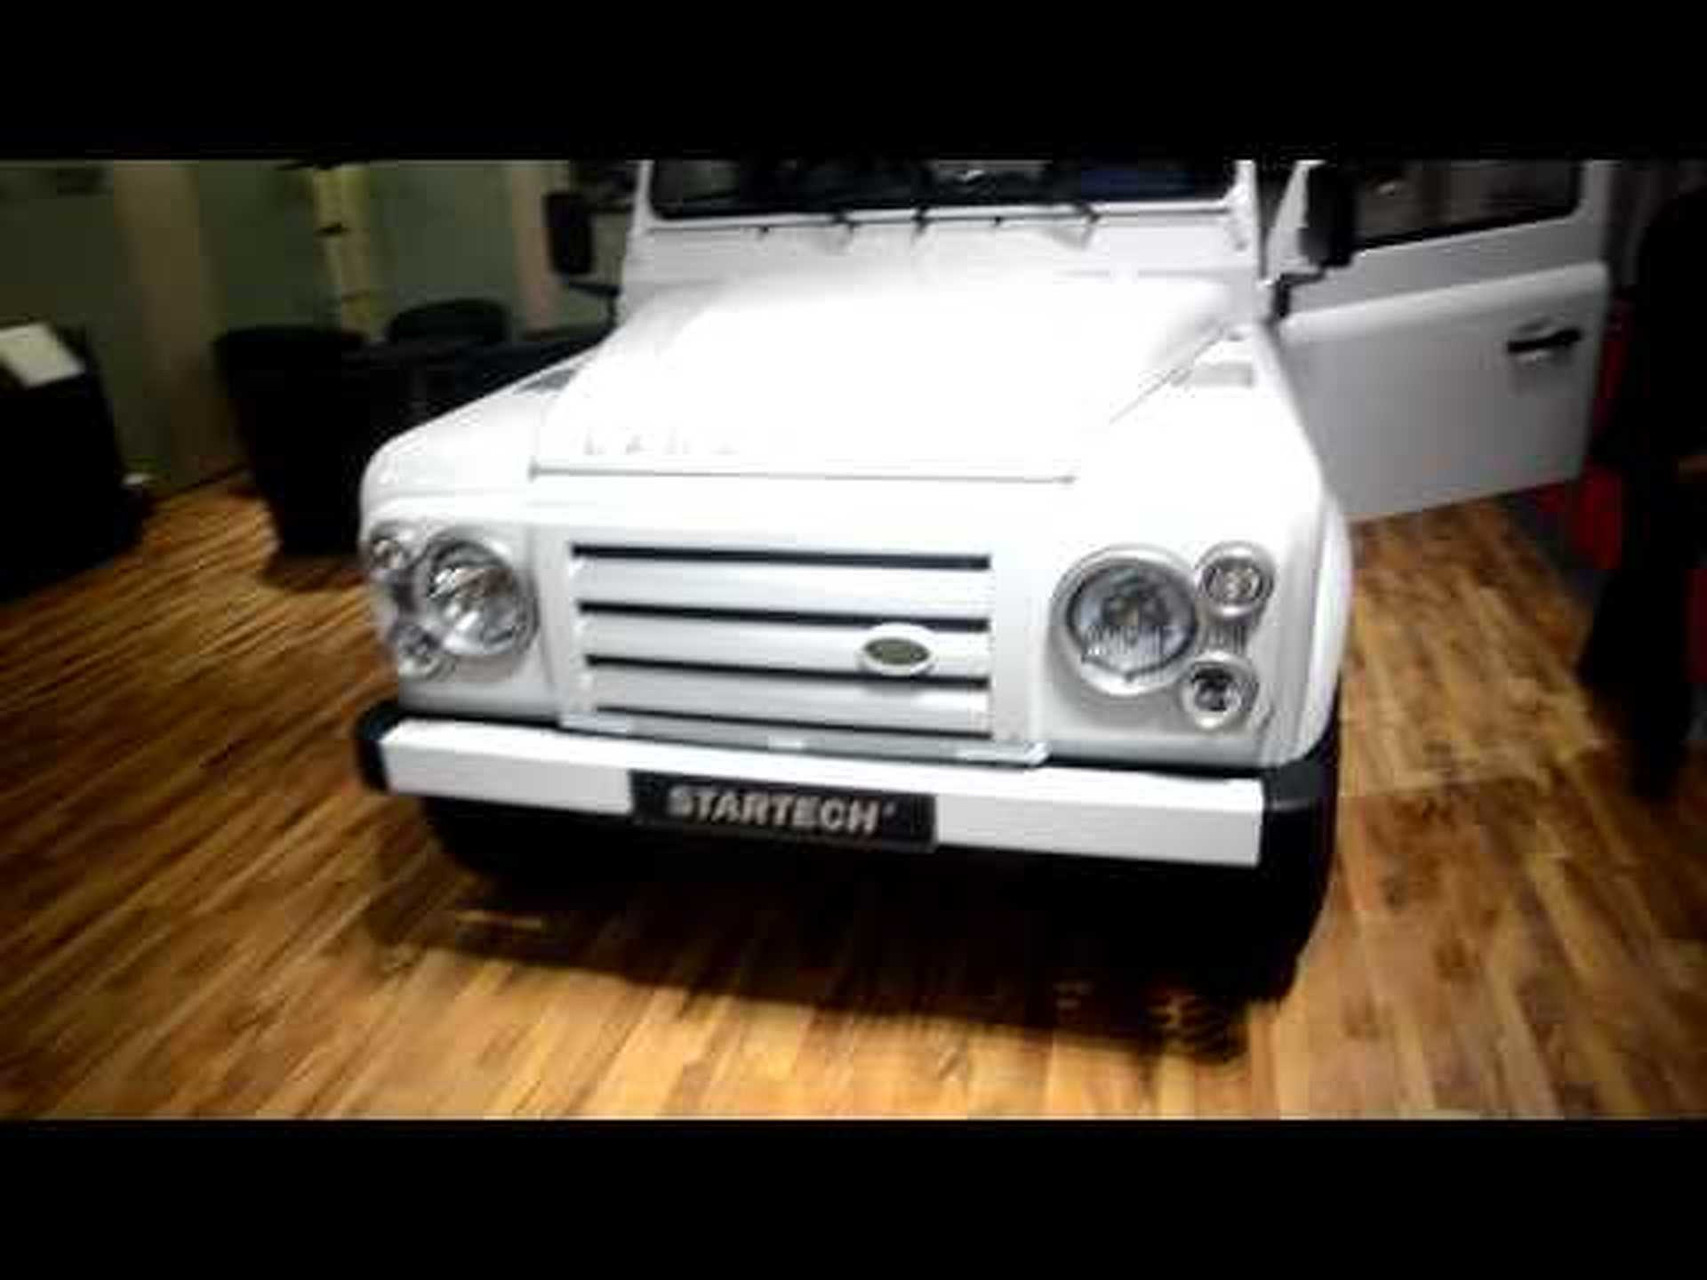 STARTECH at Essen Motor Show 2010